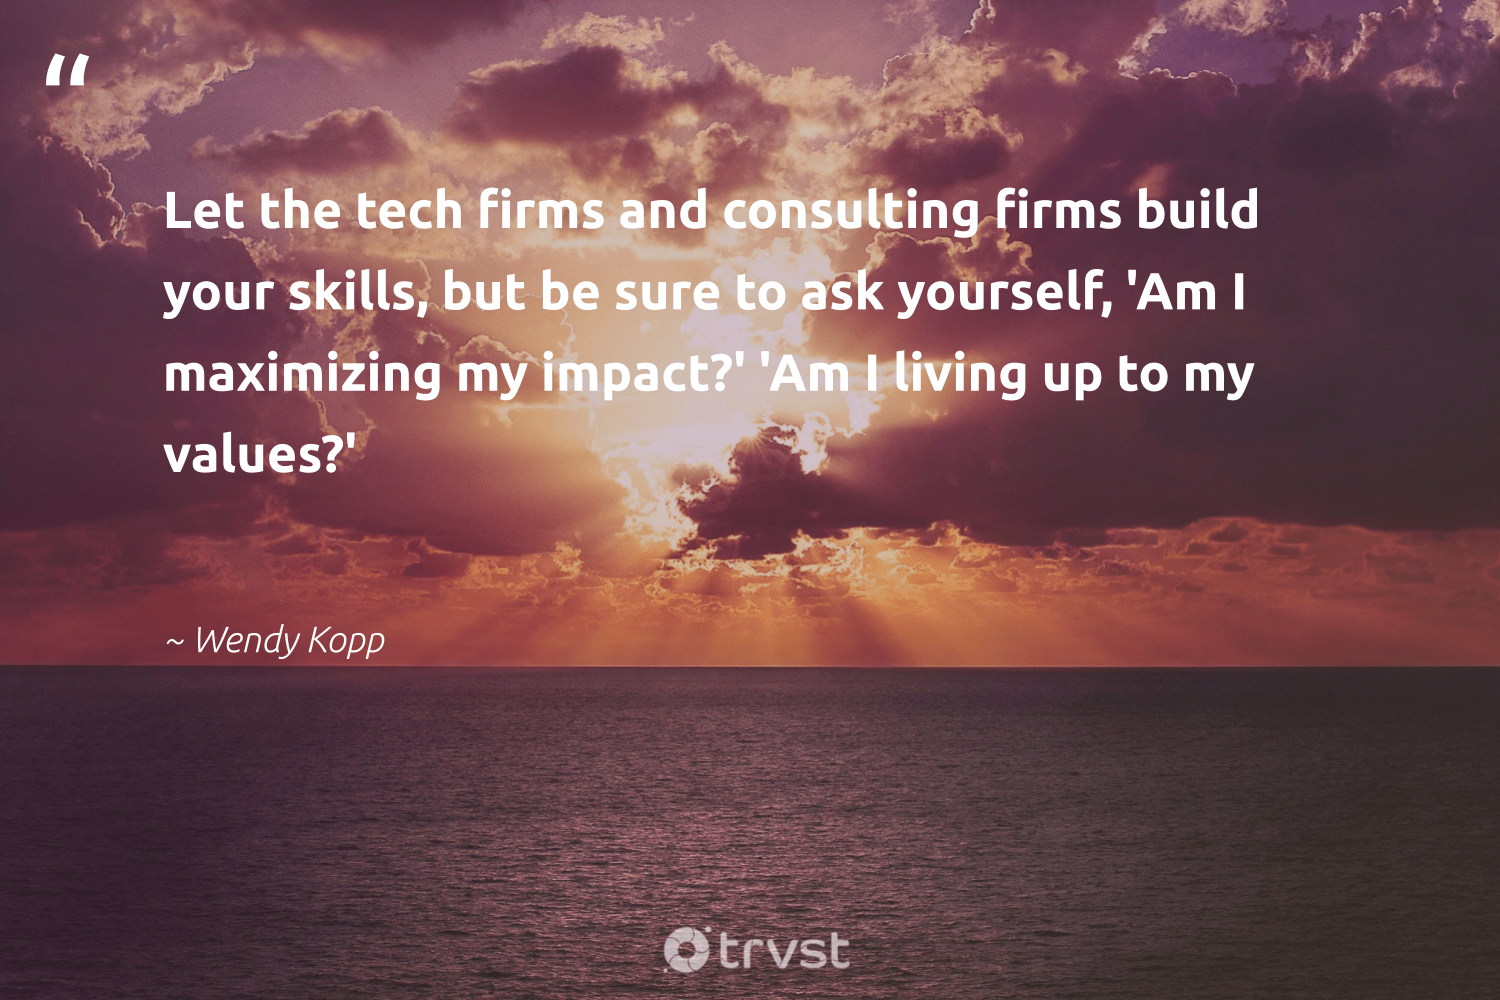 """Let the tech firms and consulting firms build your skills, but be sure to ask yourself, 'Am I maximizing my impact?' 'Am I living up to my values?'""  - Wendy Kopp #trvst #quotes #impact #makeadifference #thinkgreen #betterplanet #gogreen #giveback #socialimpact #socialchange #dotherightthing #ethicalbusiness"